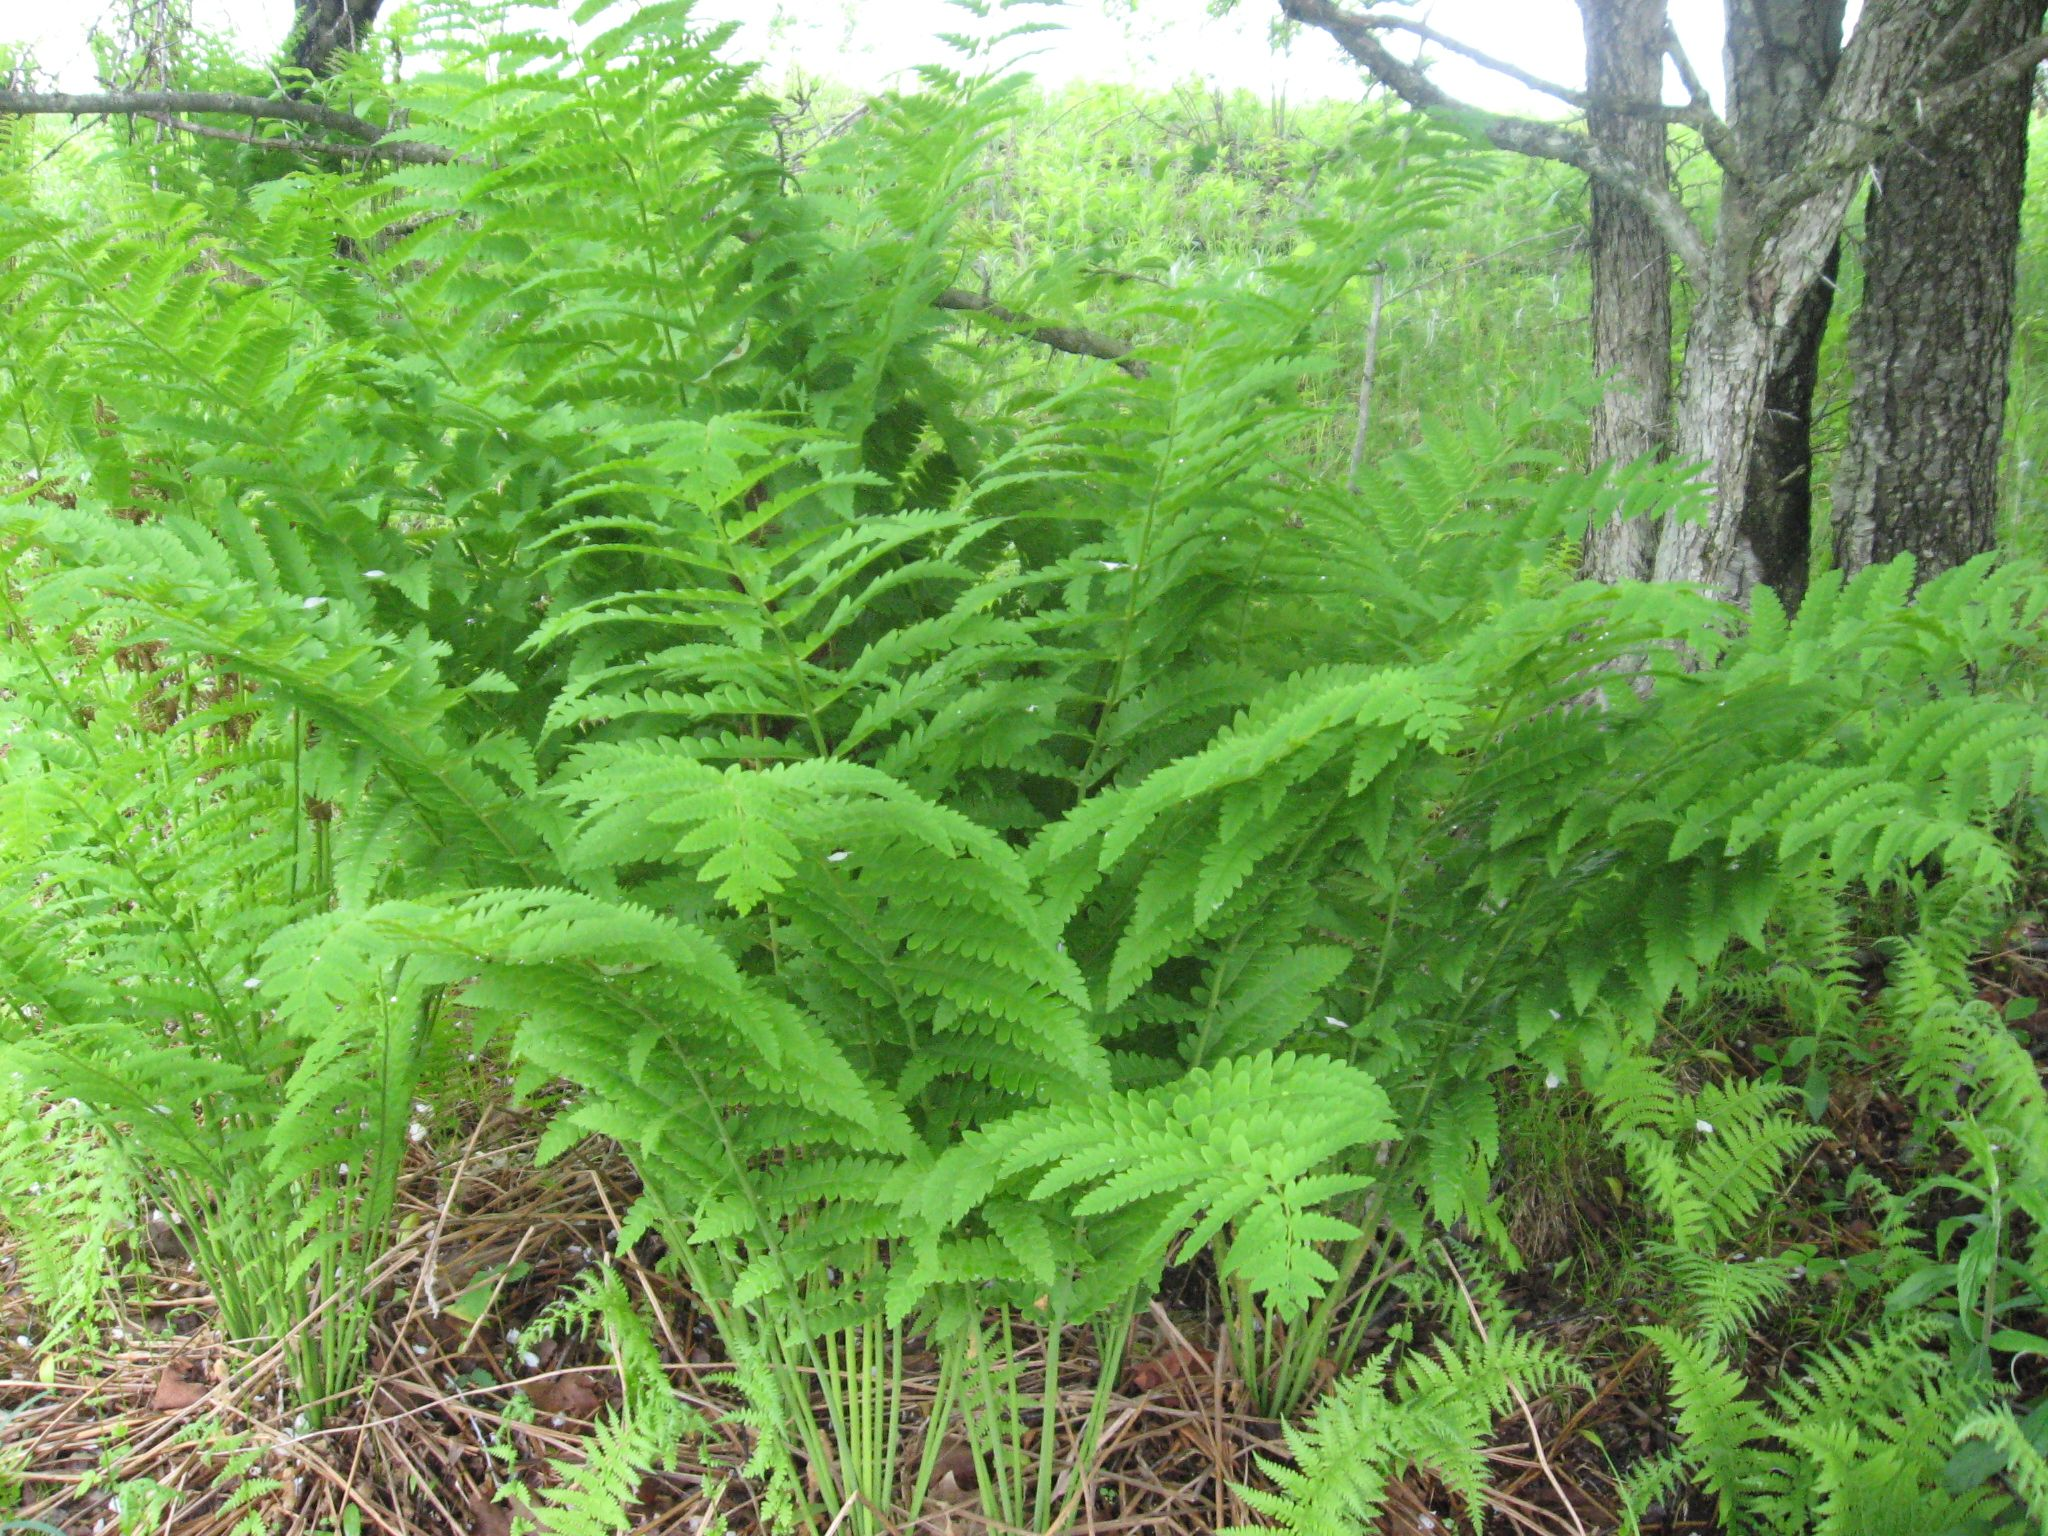 Where Fern Grows Wild